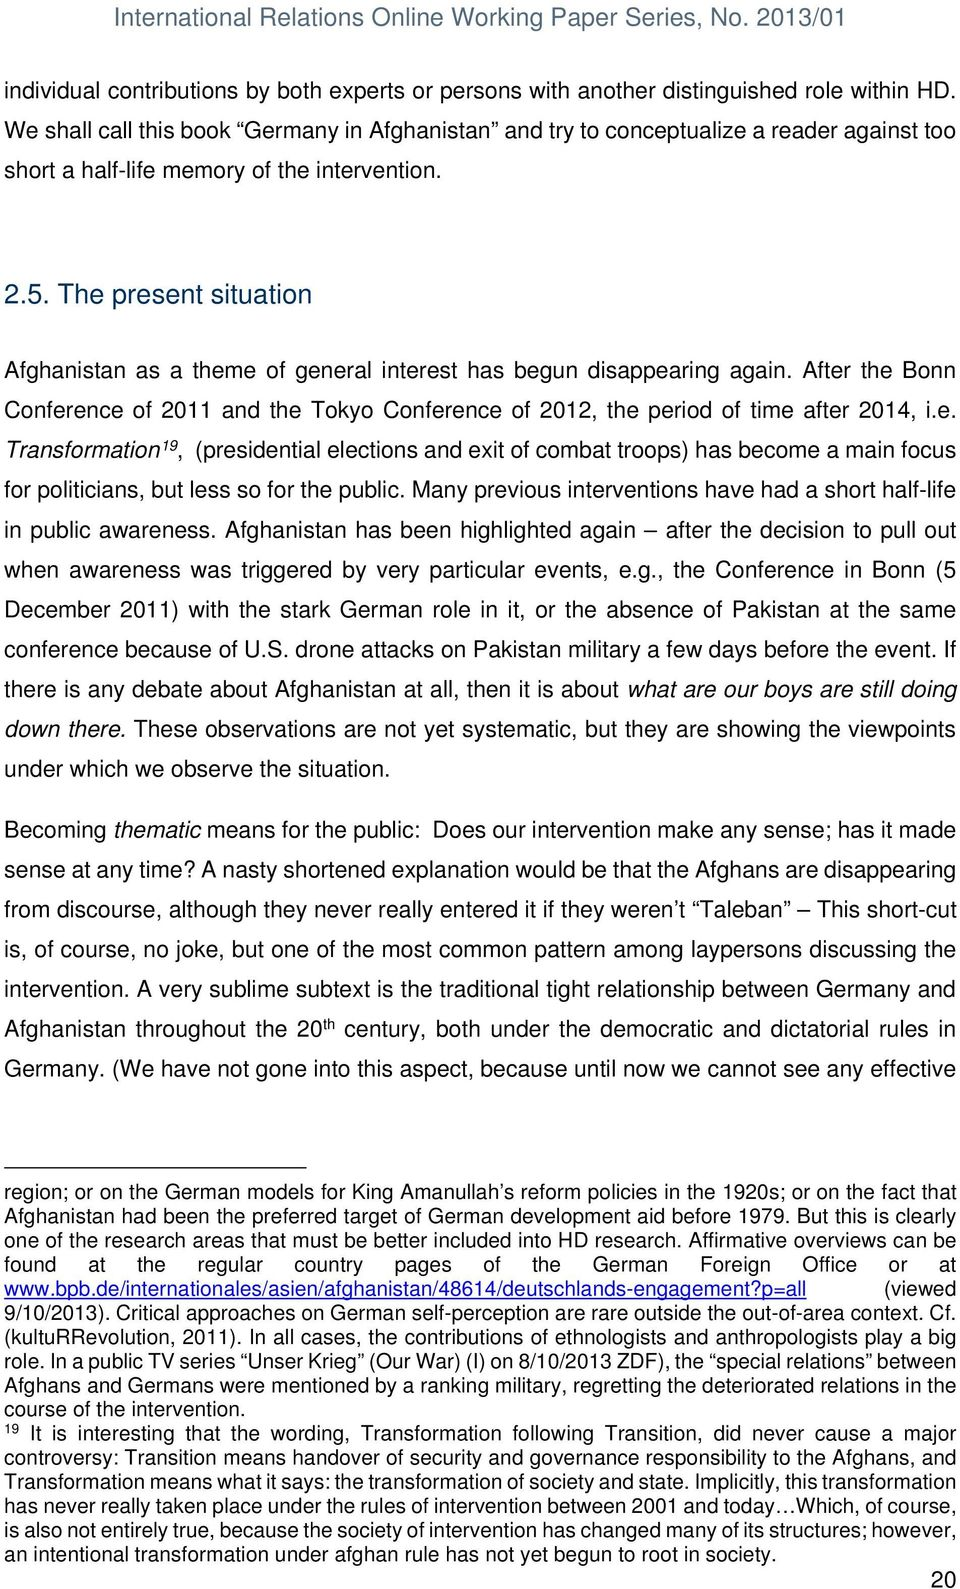 The present situation Afghanistan as a theme of general interest has begun disappearing again. After the Bonn Conference of 2011 and the Tokyo Conference of 2012, the period of time after 2014, i.e. Transformation 19, (presidential elections and exit of combat troops) has become a main focus for politicians, but less so for the public.